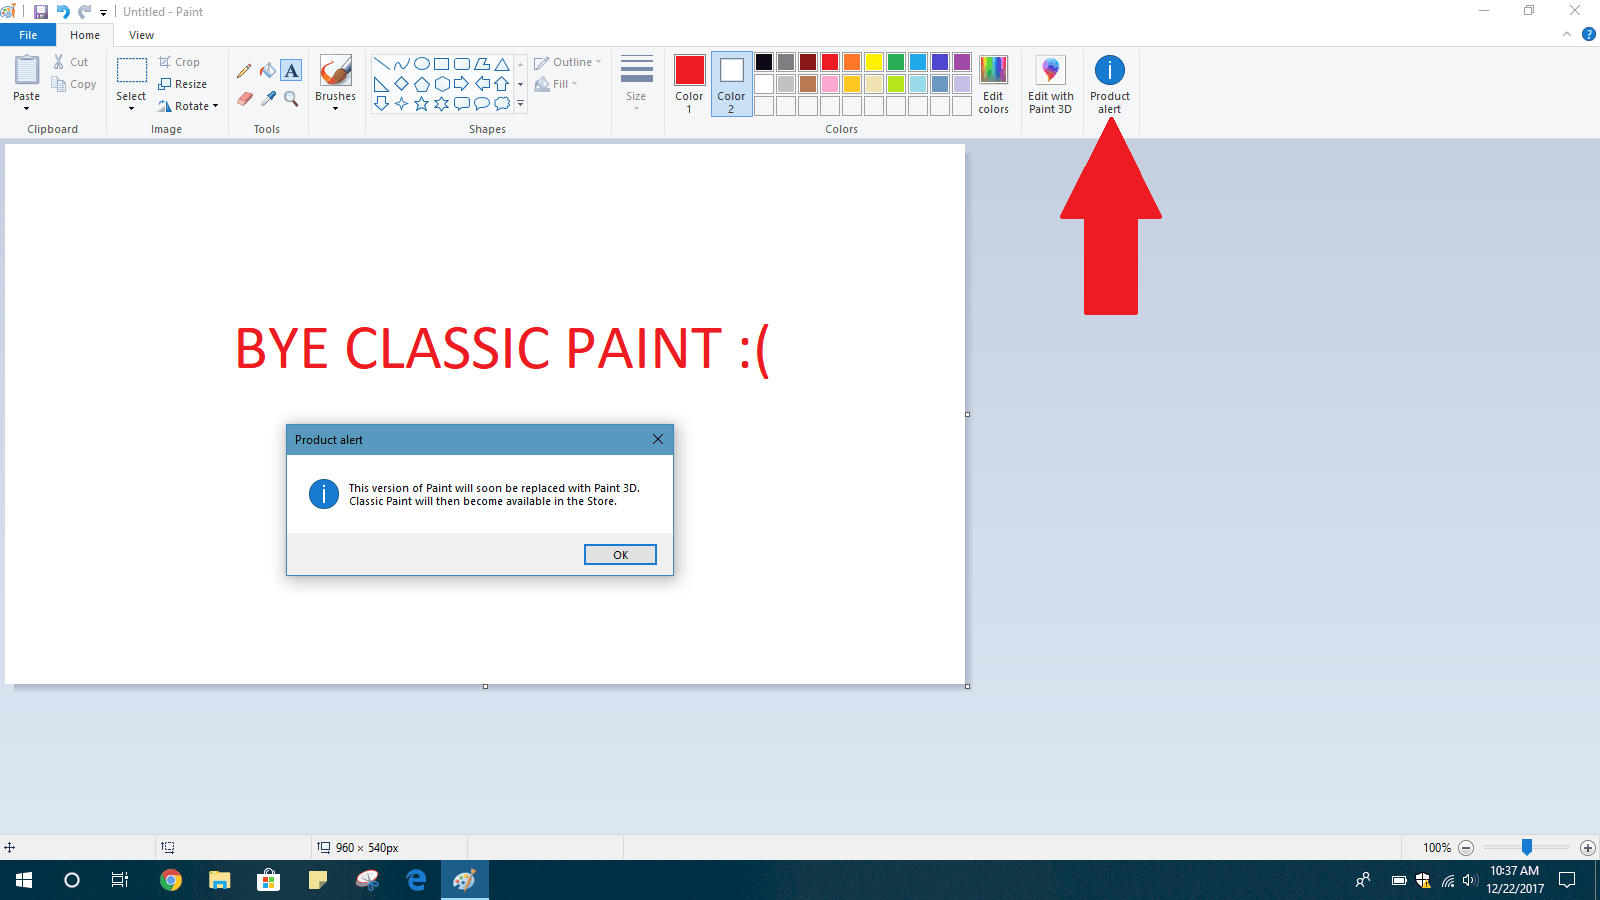 Microsoft confirms it won't remove ms paint from windows 10 for now - onmsft. Com - april 23, 2019